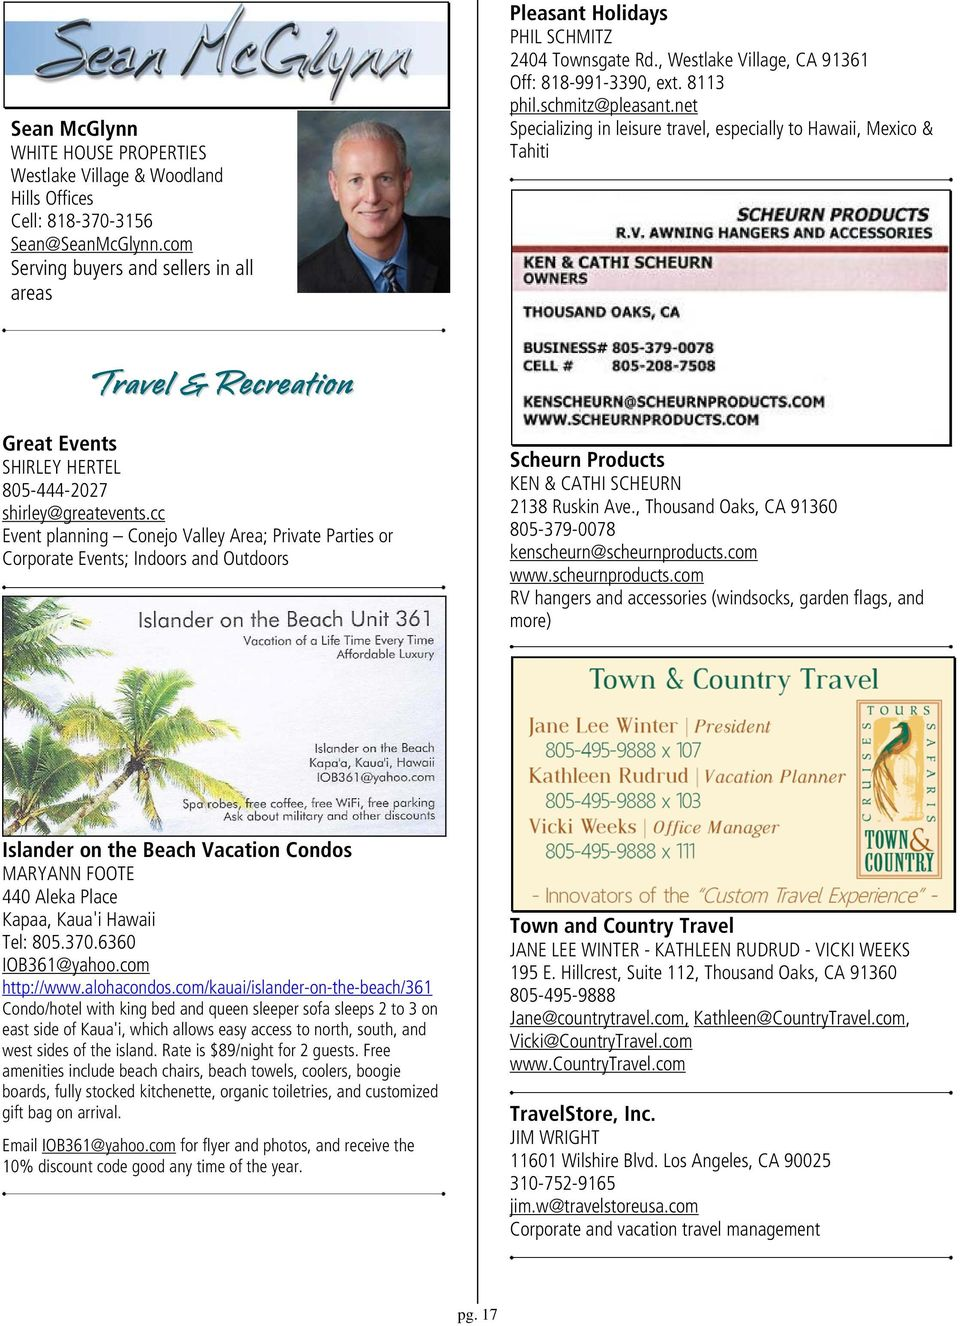 net Specializing in leisure travel, especially to Hawaii, Mexico & Tahiti Travel & Recreation Great Events SHIRLEY HERTEL 805-444-2027 shirley@greatevents.